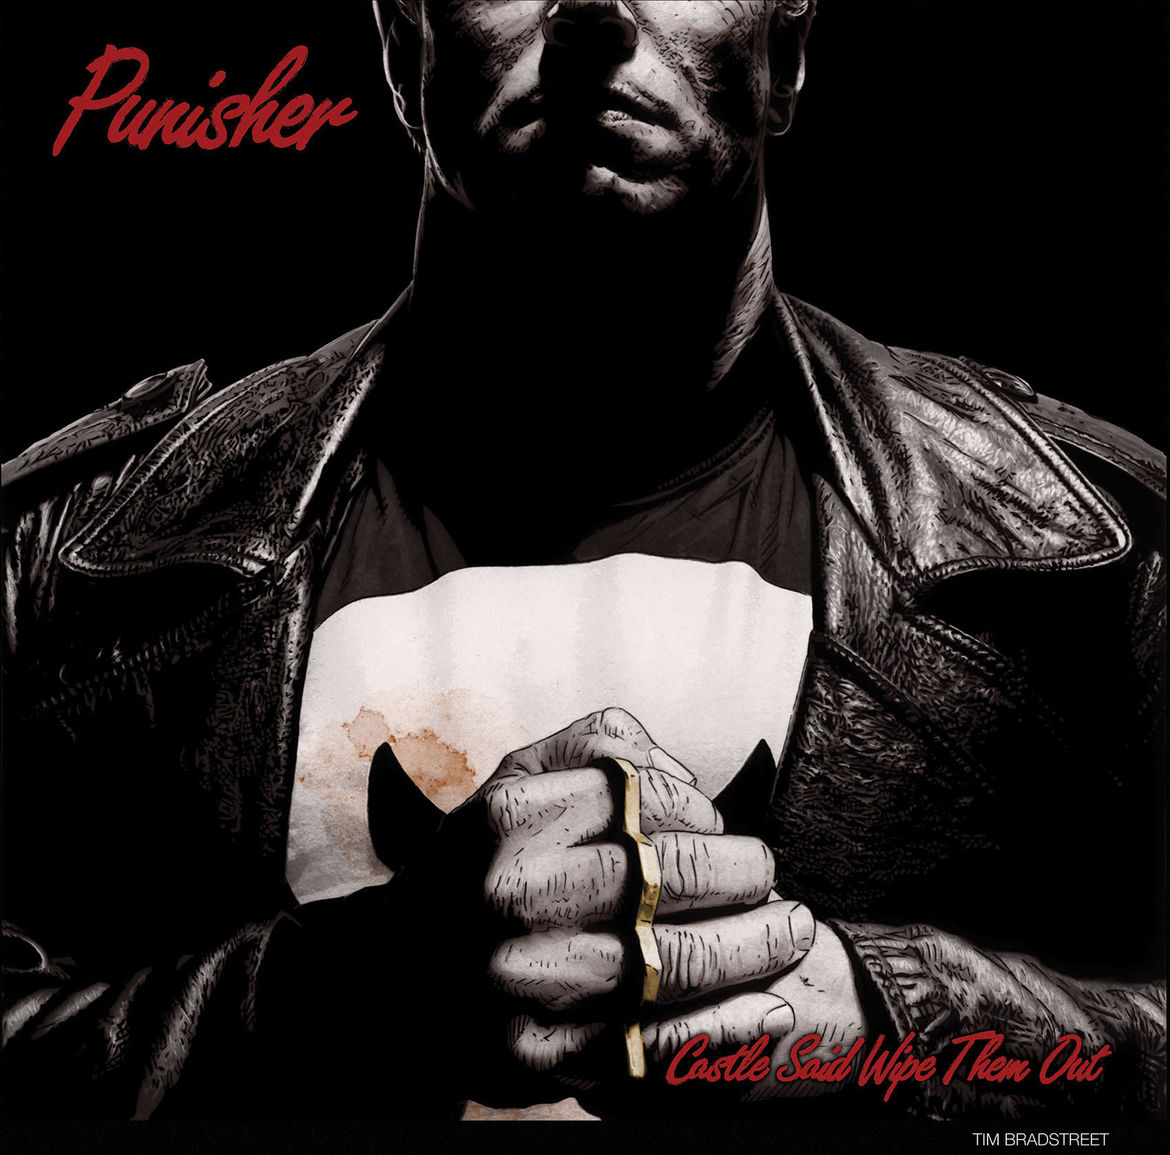 LL Cool J Punisher album cover Marvel